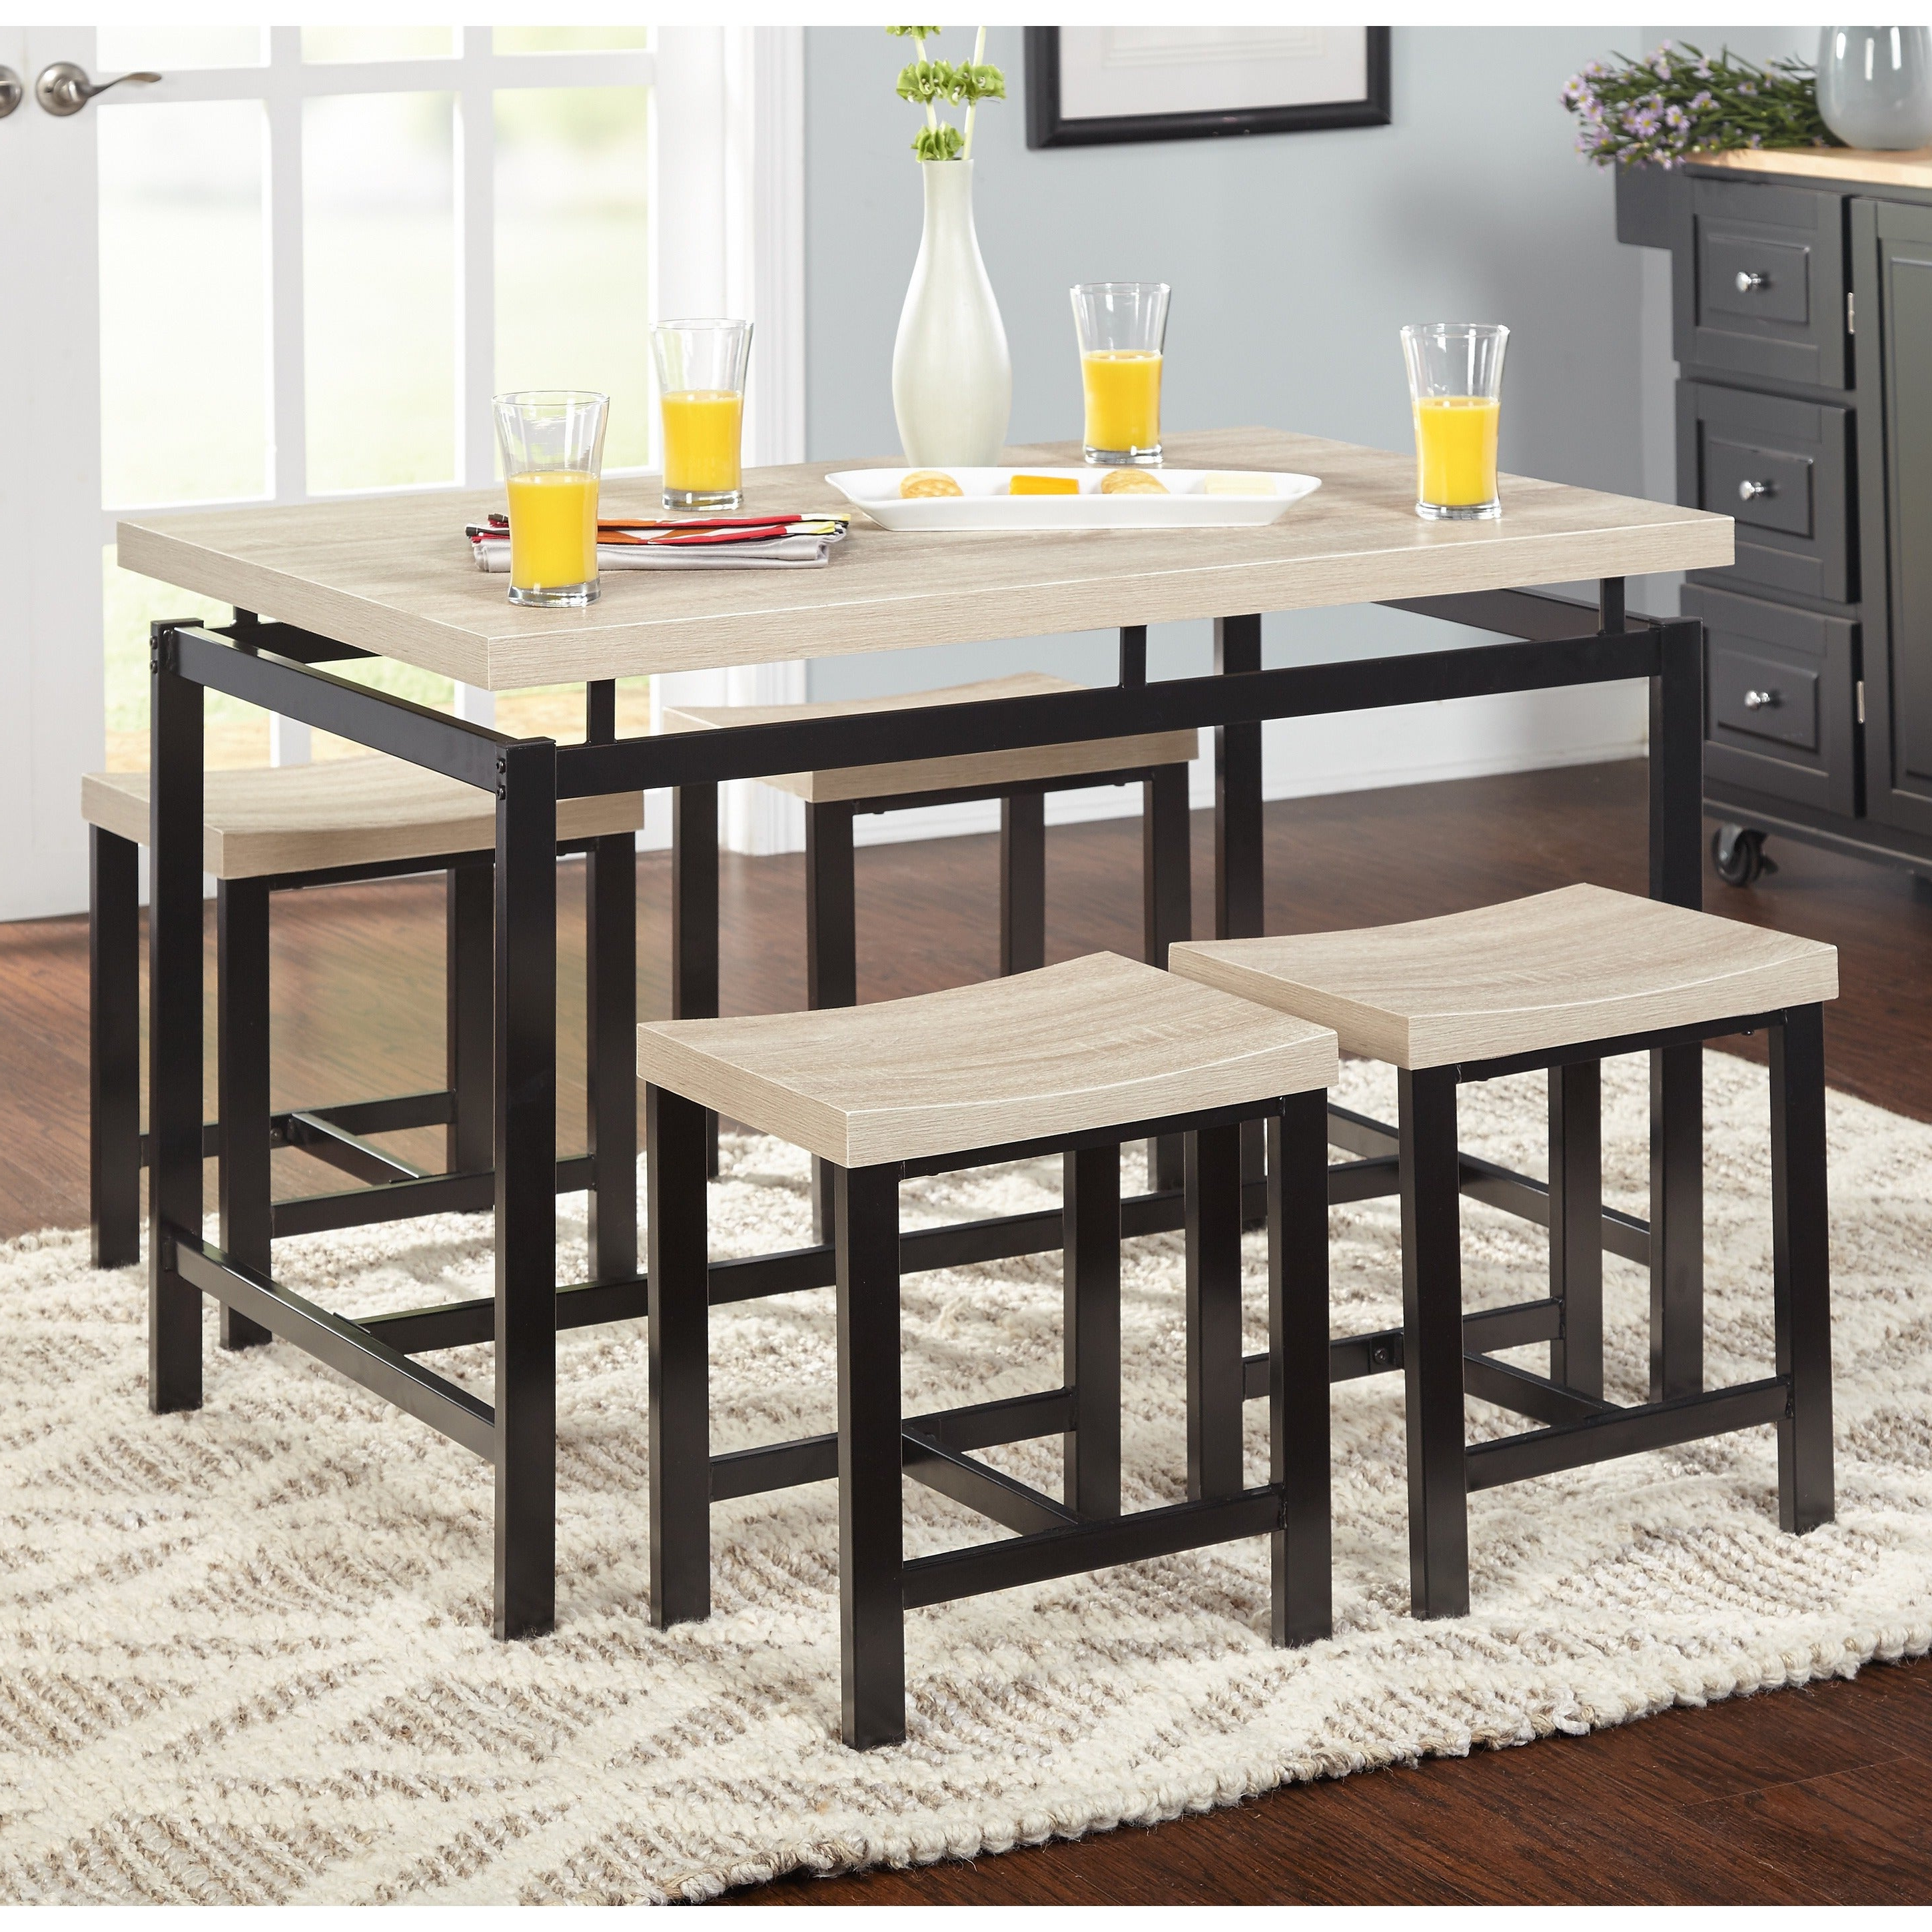 Current Cincinnati 3 Piece Dining Sets Within Buy Breakfast Nook Kitchen & Dining Room Sets Online At Overstock (View 7 of 20)